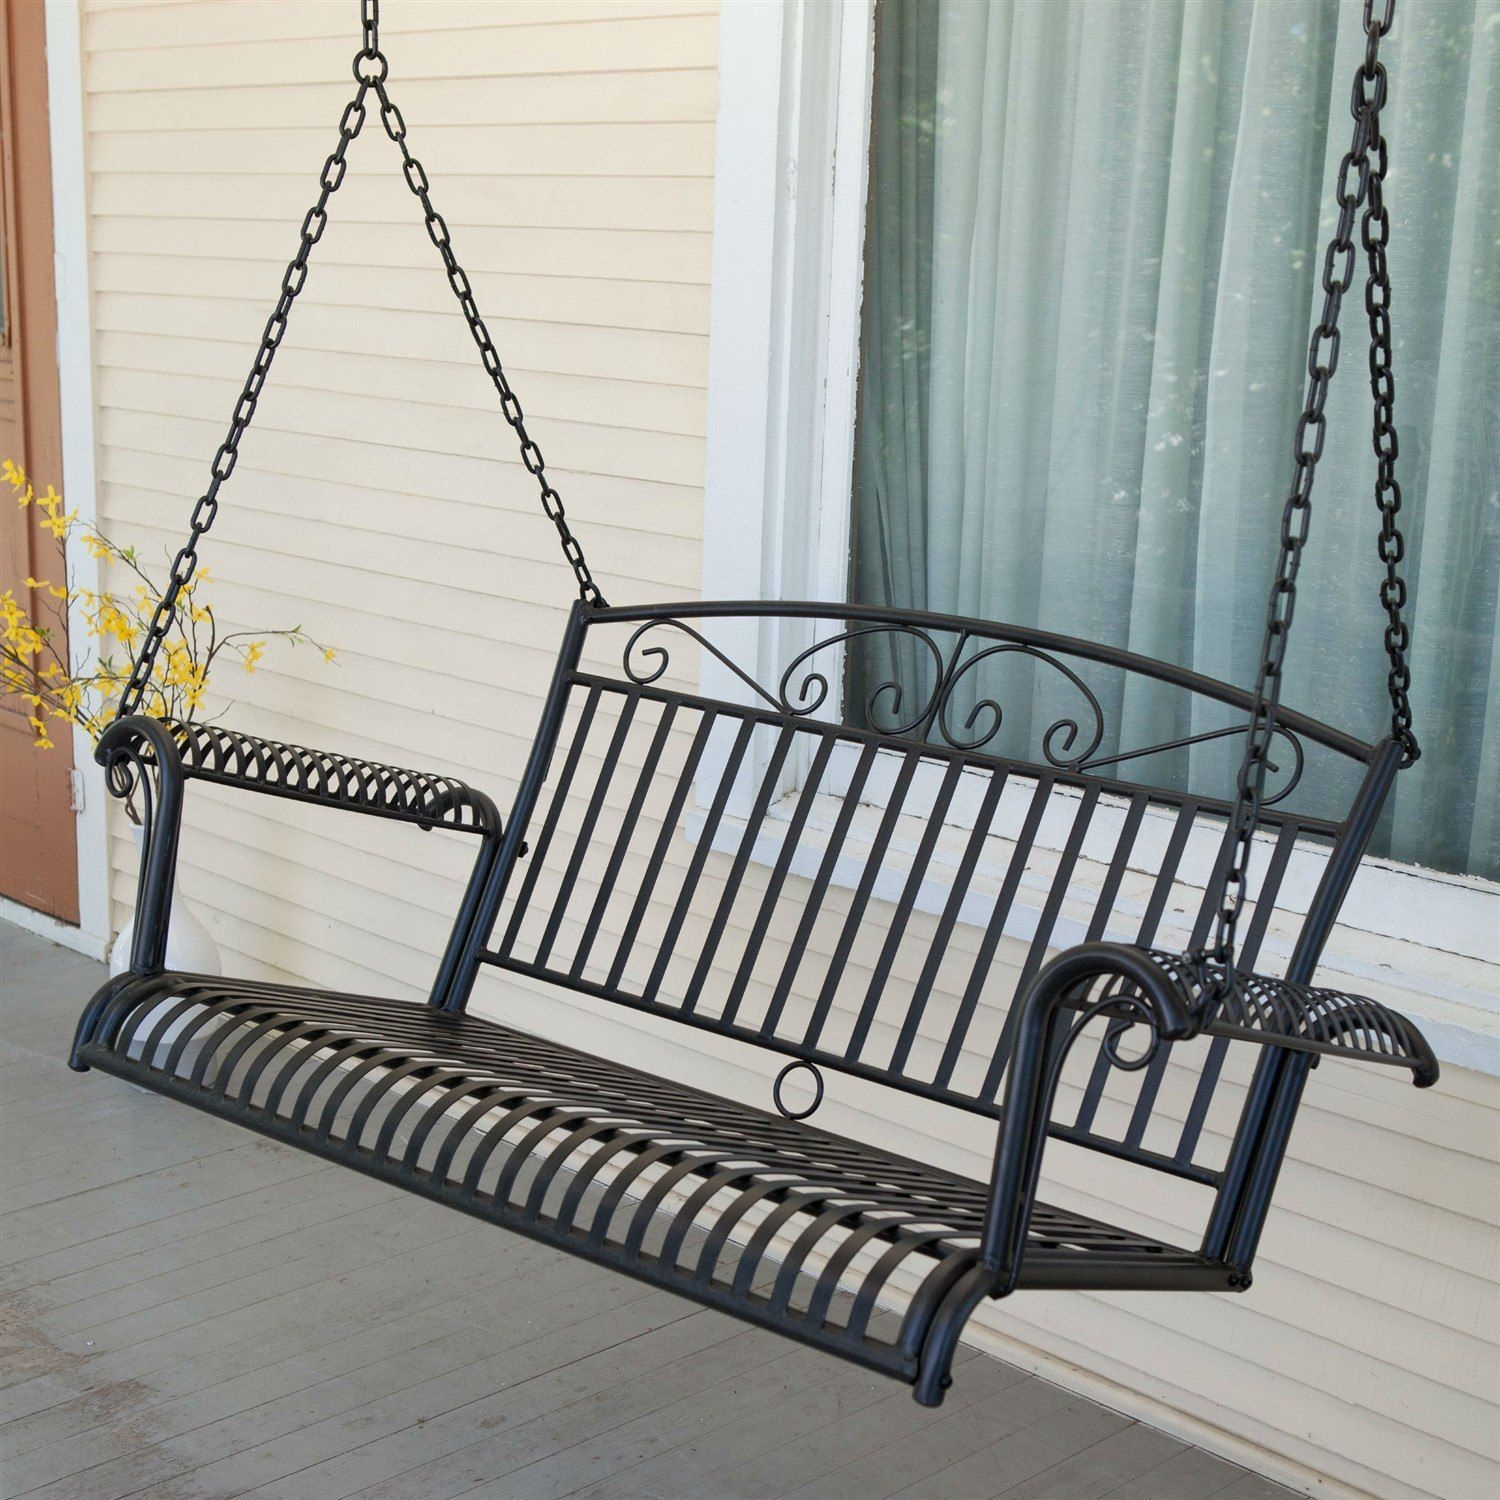 Wrought Iron Outdoor Patio 4 Ft Porch Swing In Black | Porch With Black Outdoor Durable Steel Frame Patio Swing Glider Bench Chairs (Image 25 of 25)